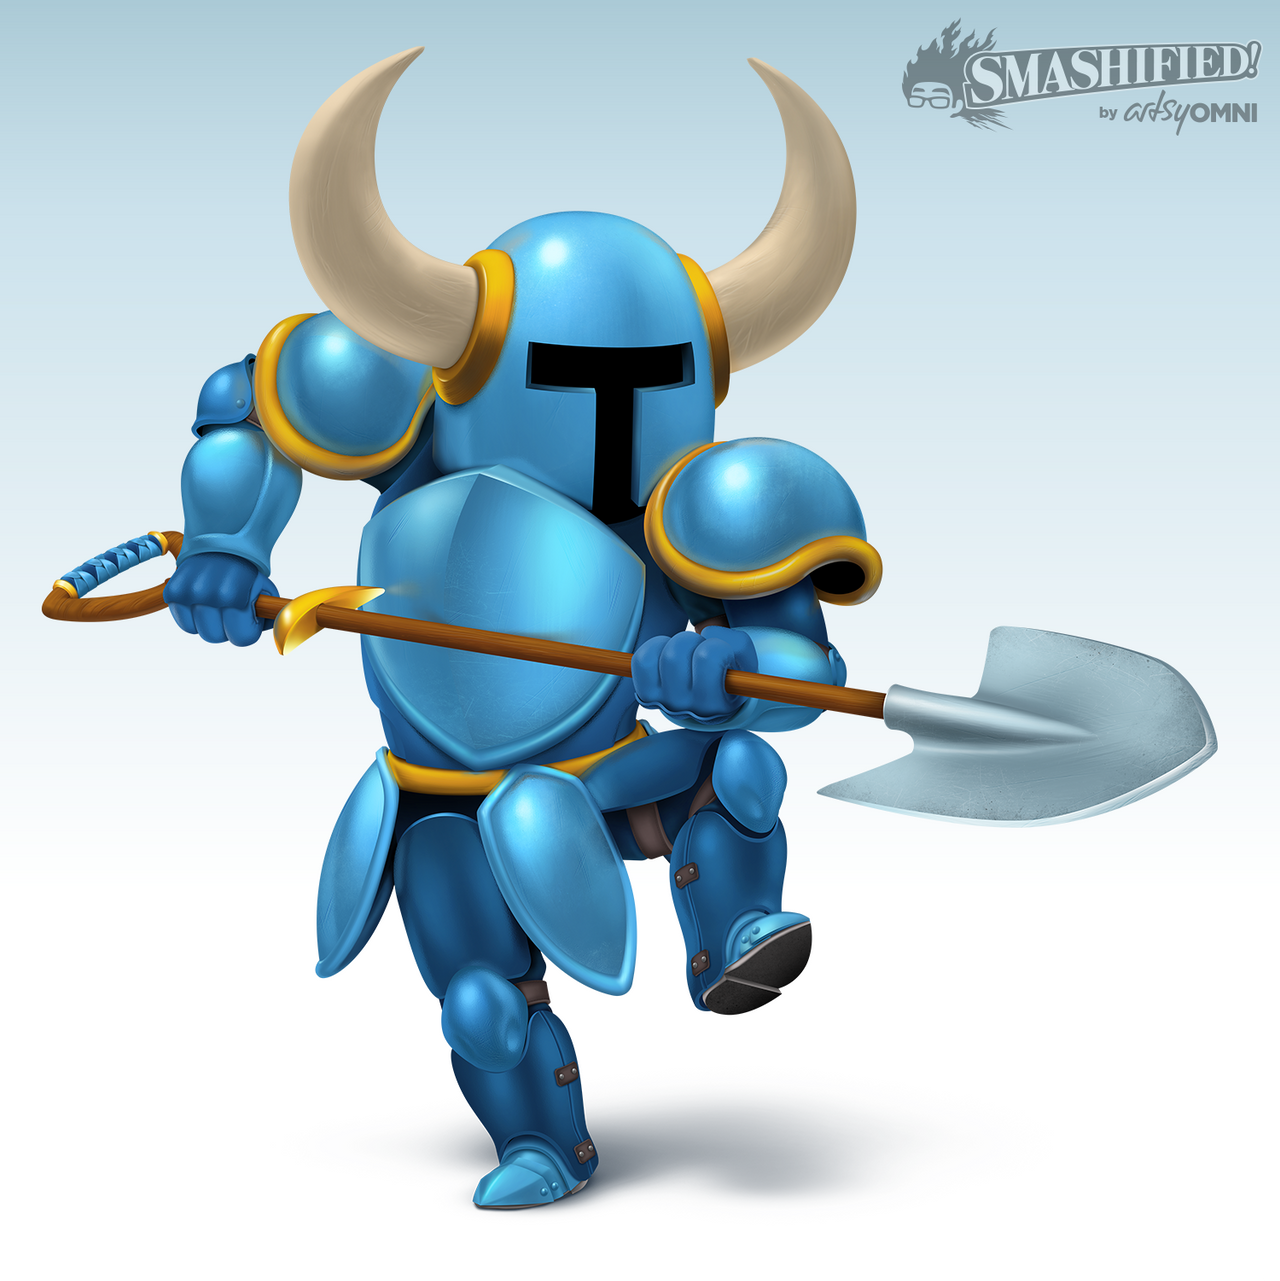 Shovel Knight Smashified